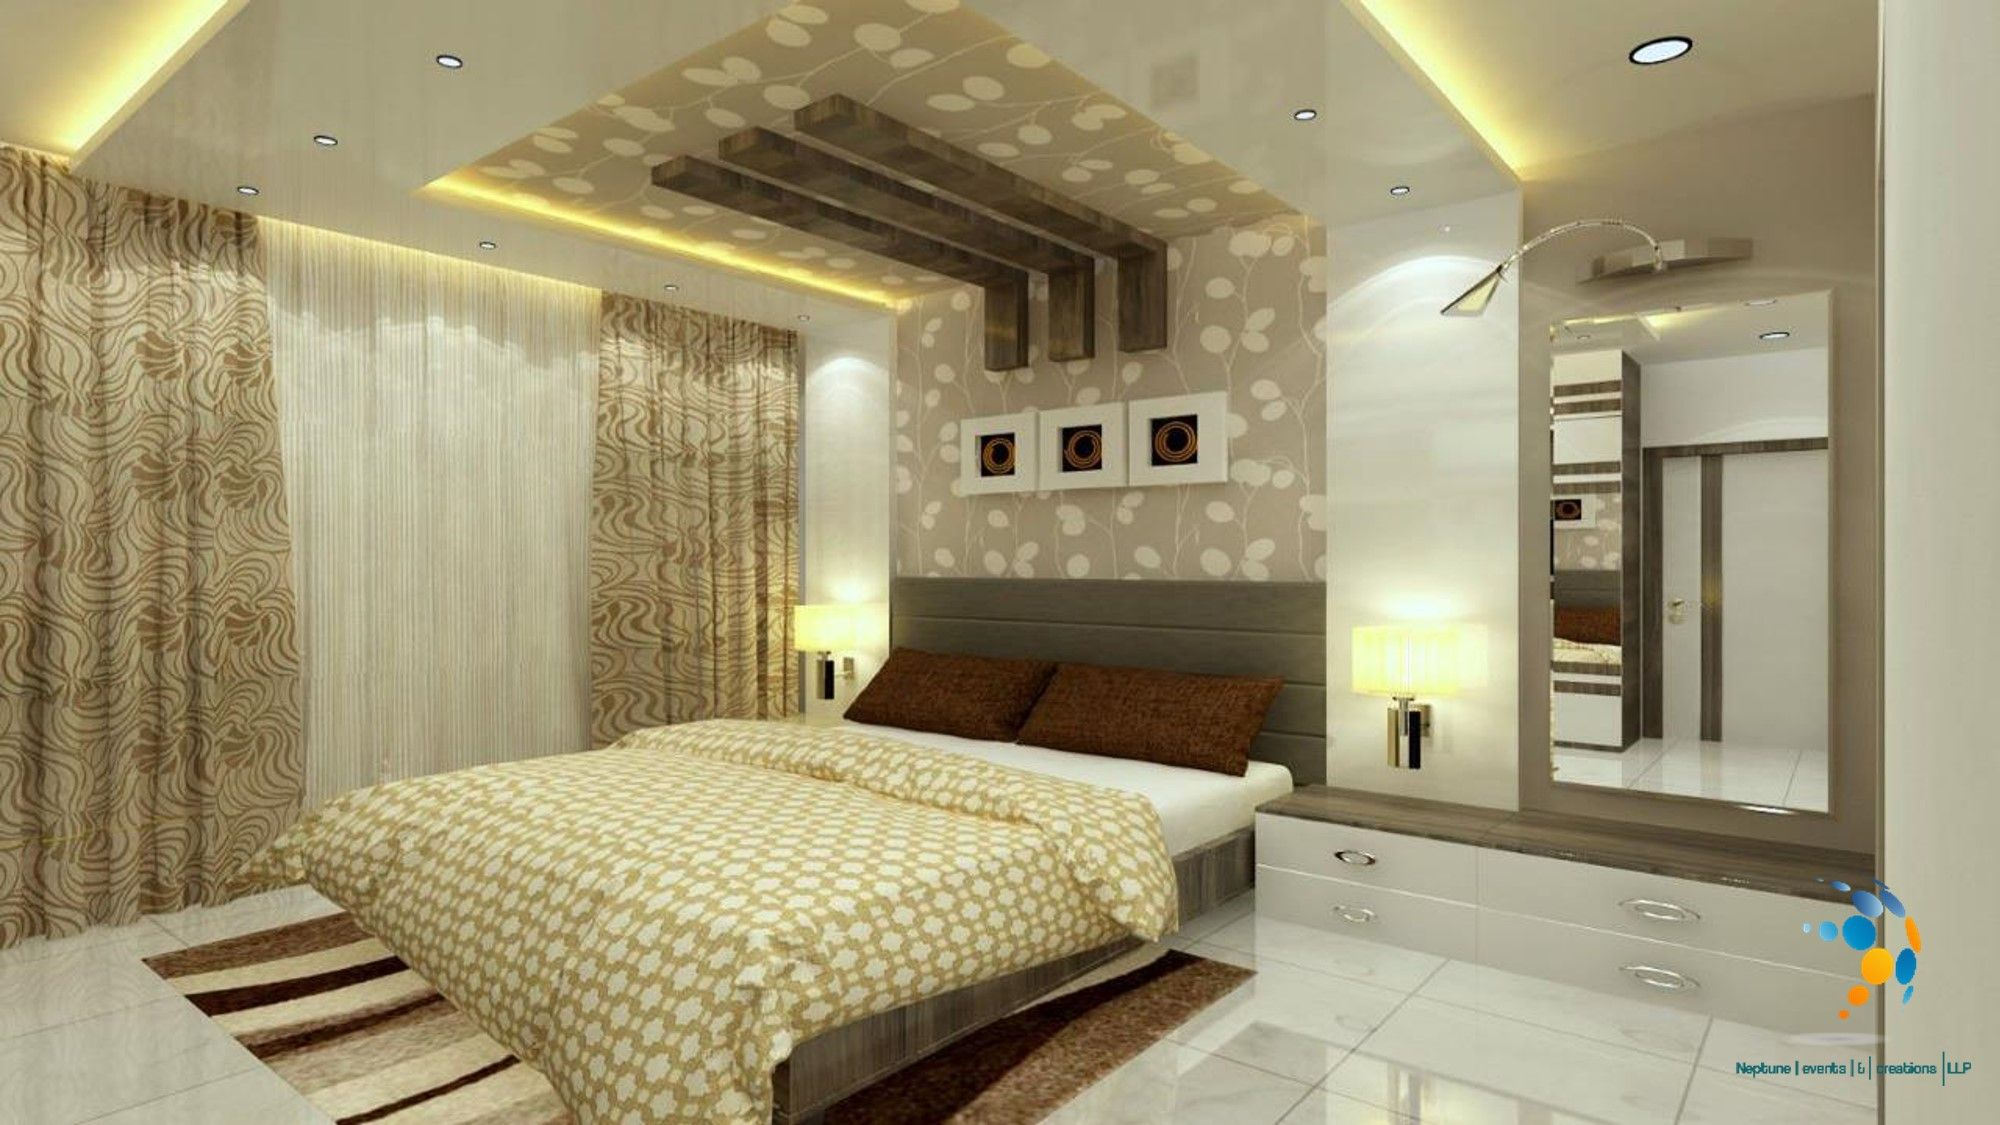 Best Interior Design And Rendering Of A Master Bedroom In A 400 x 300